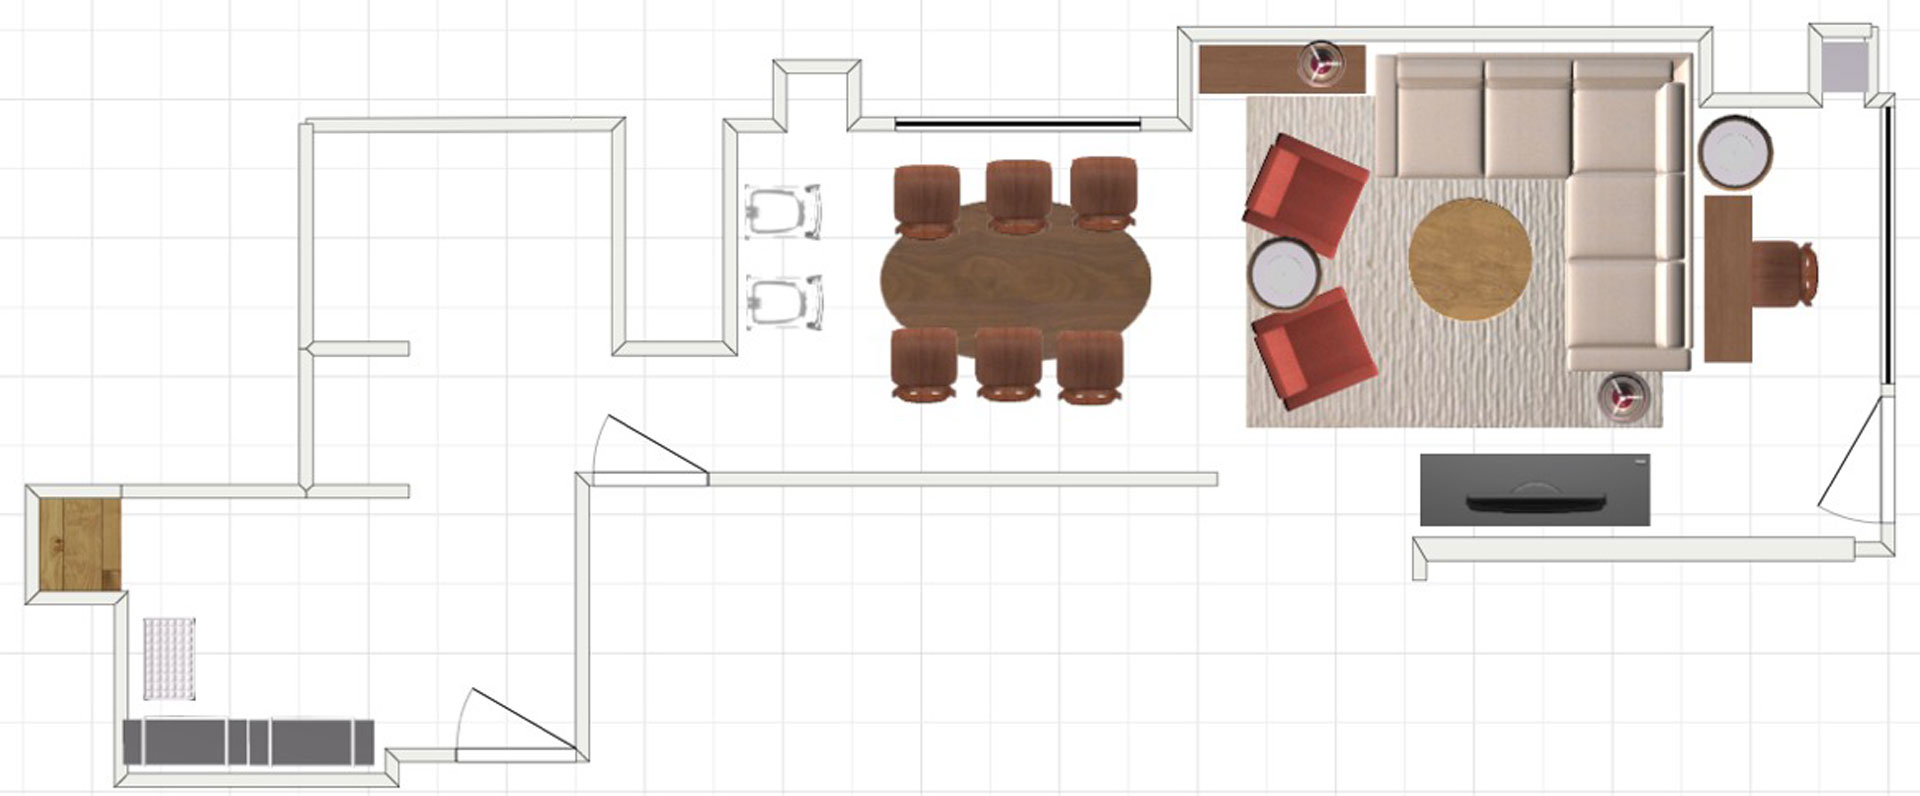 Small Space Floor Plan B